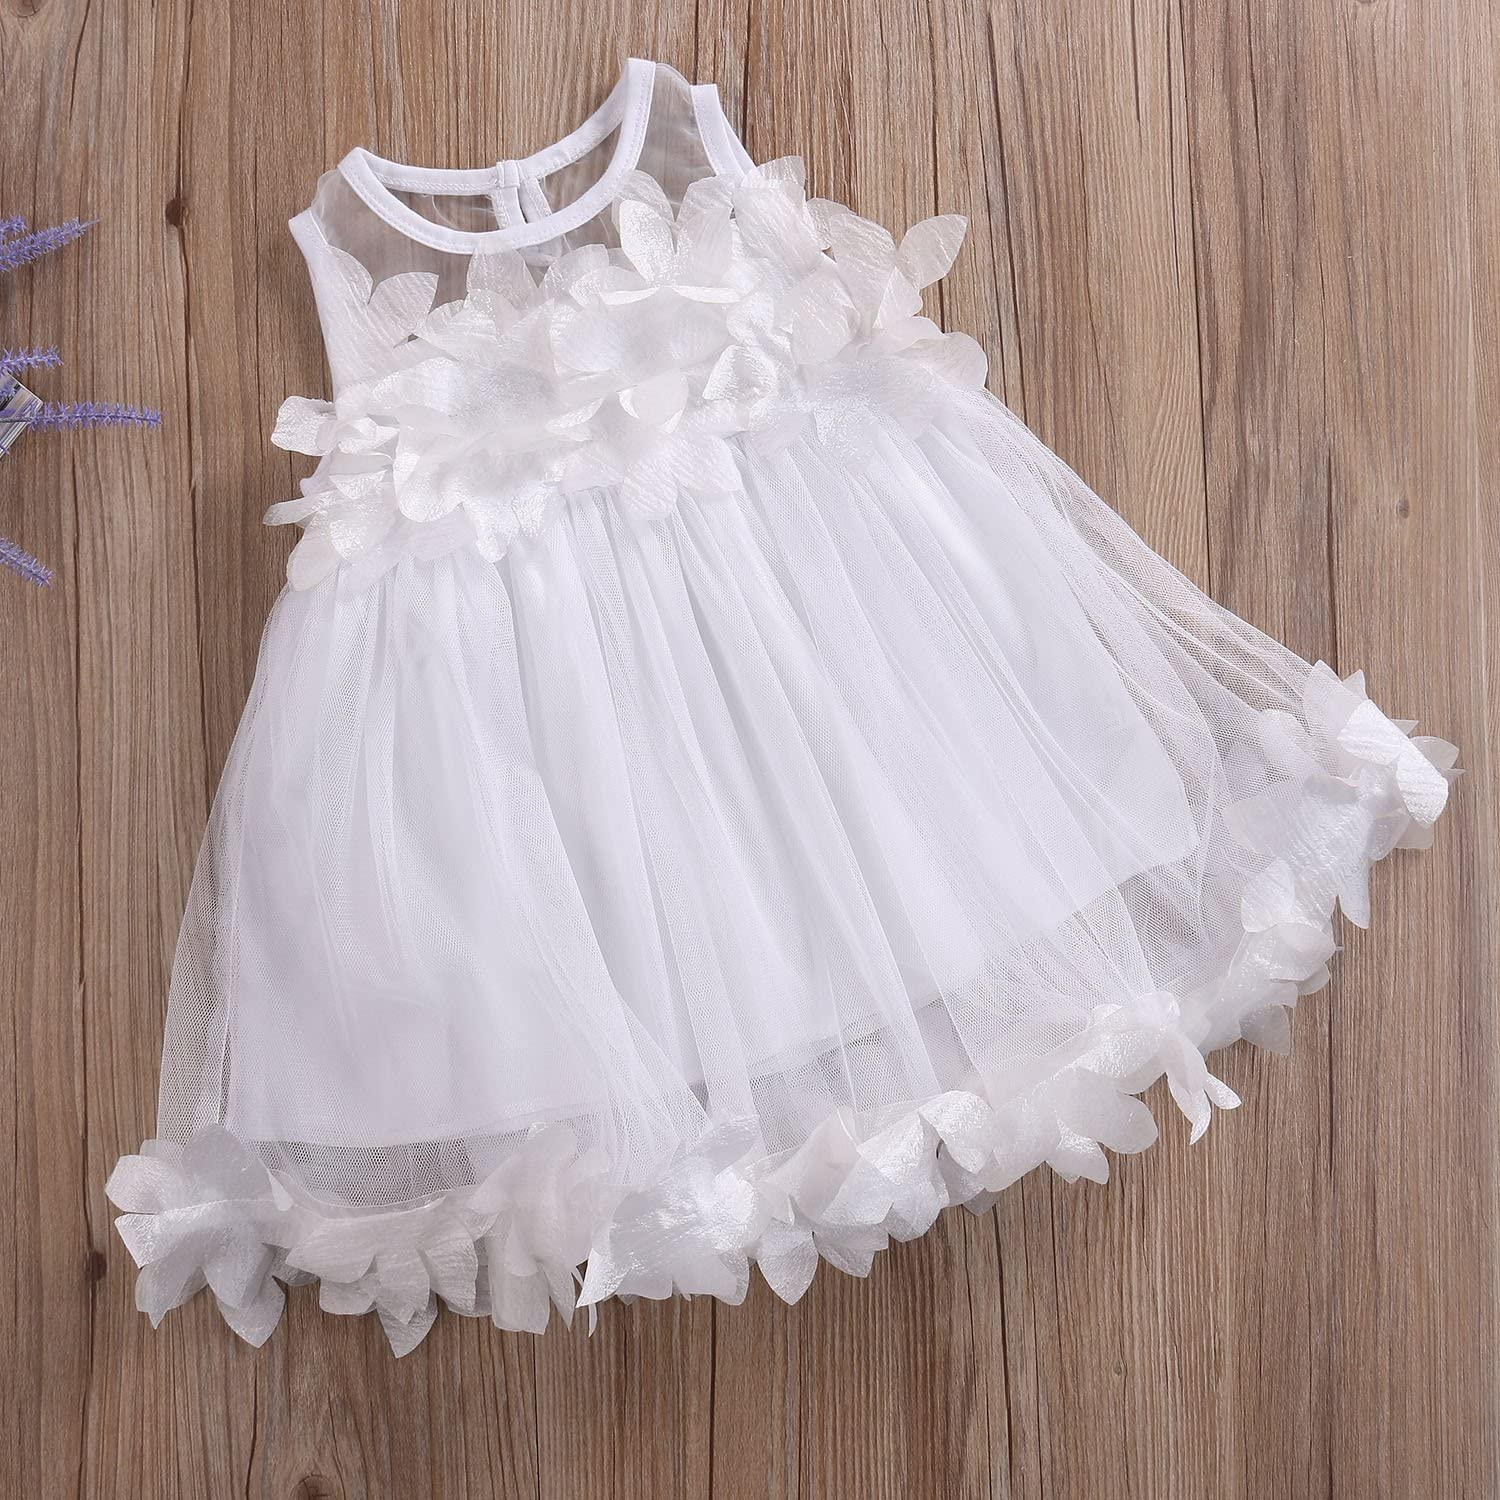 Argorgeous Baby Girl Tulle Dresses Petal Sleeveless Lace Princess Pageant Sundresses Formal Party Clothes Set